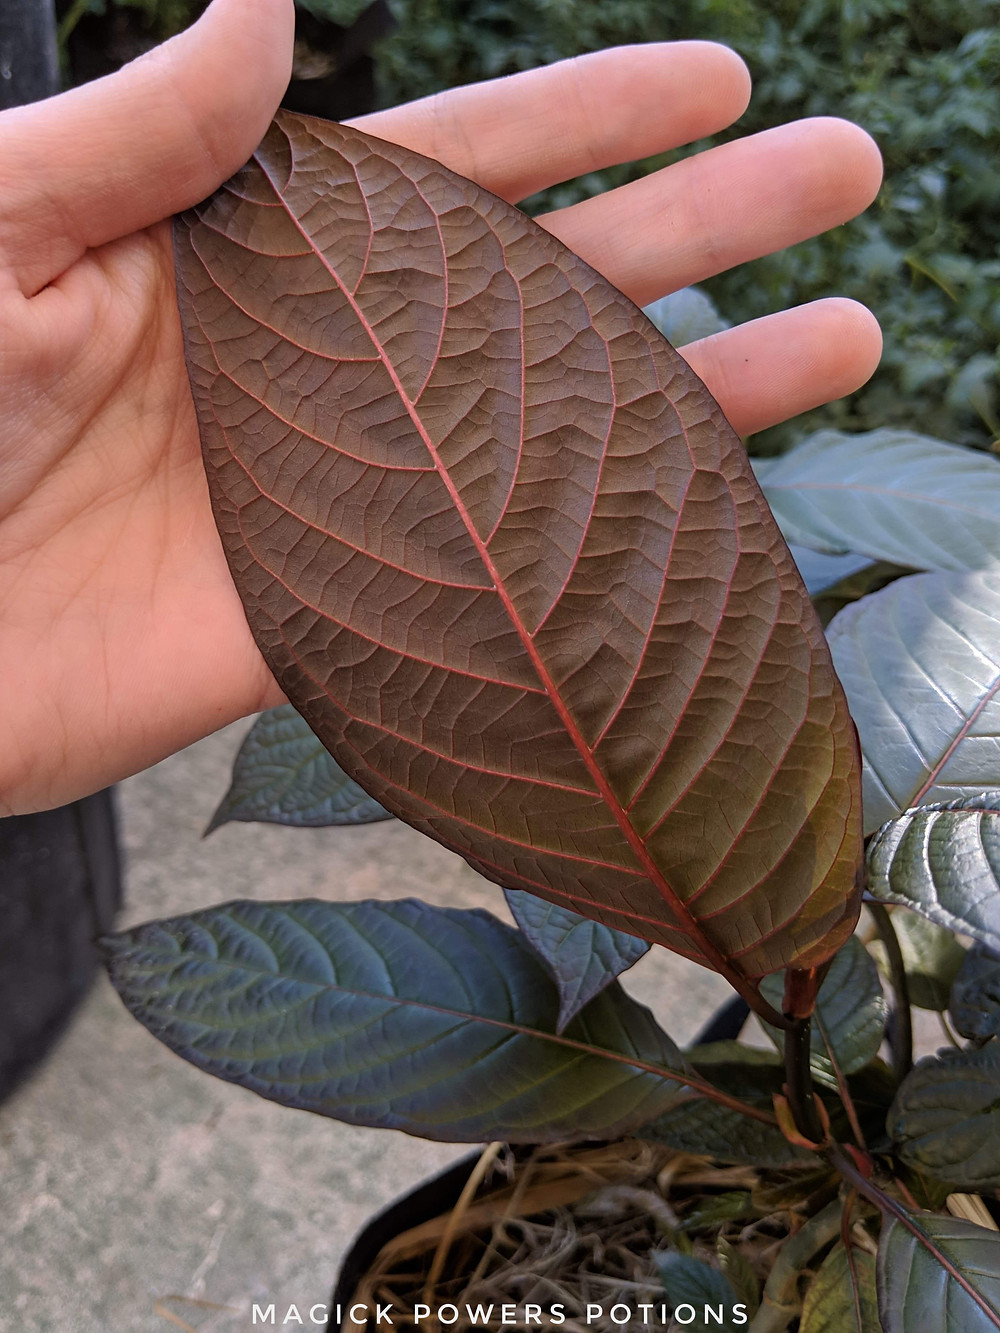 The leaves feature impressive vascularity.